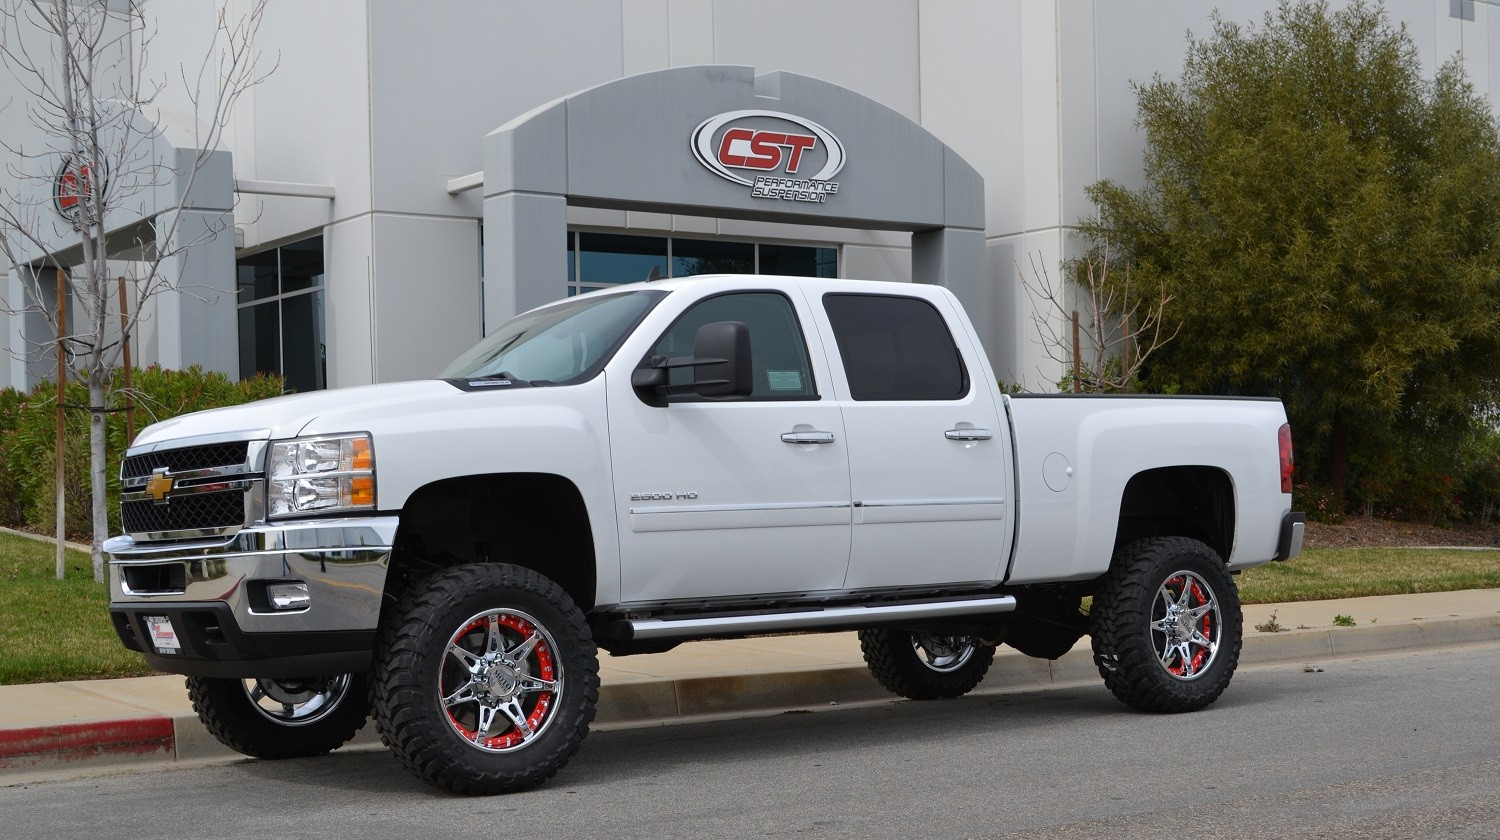 2011 2019 Chevy Silverado Gmc Sierra 2500hd 2wd 4wd Stock Torsion Location Lift Kit By Cst 3 6 Front 1 Rear Lift